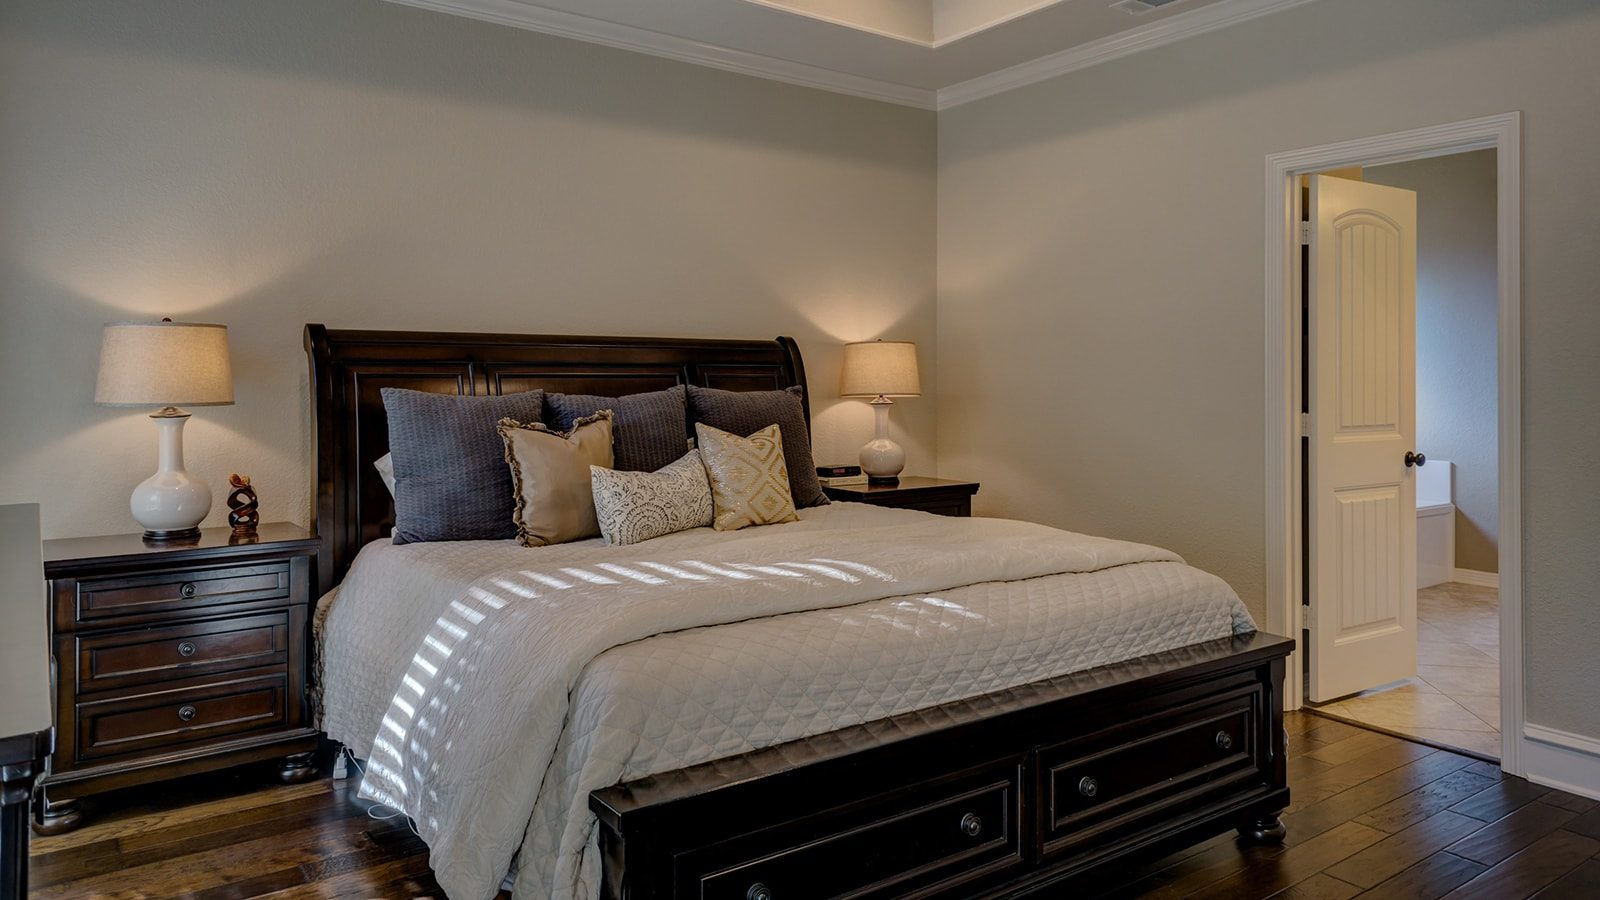 Serene Neutral Bedroom Designs to Create the Perfect Room to Relax In